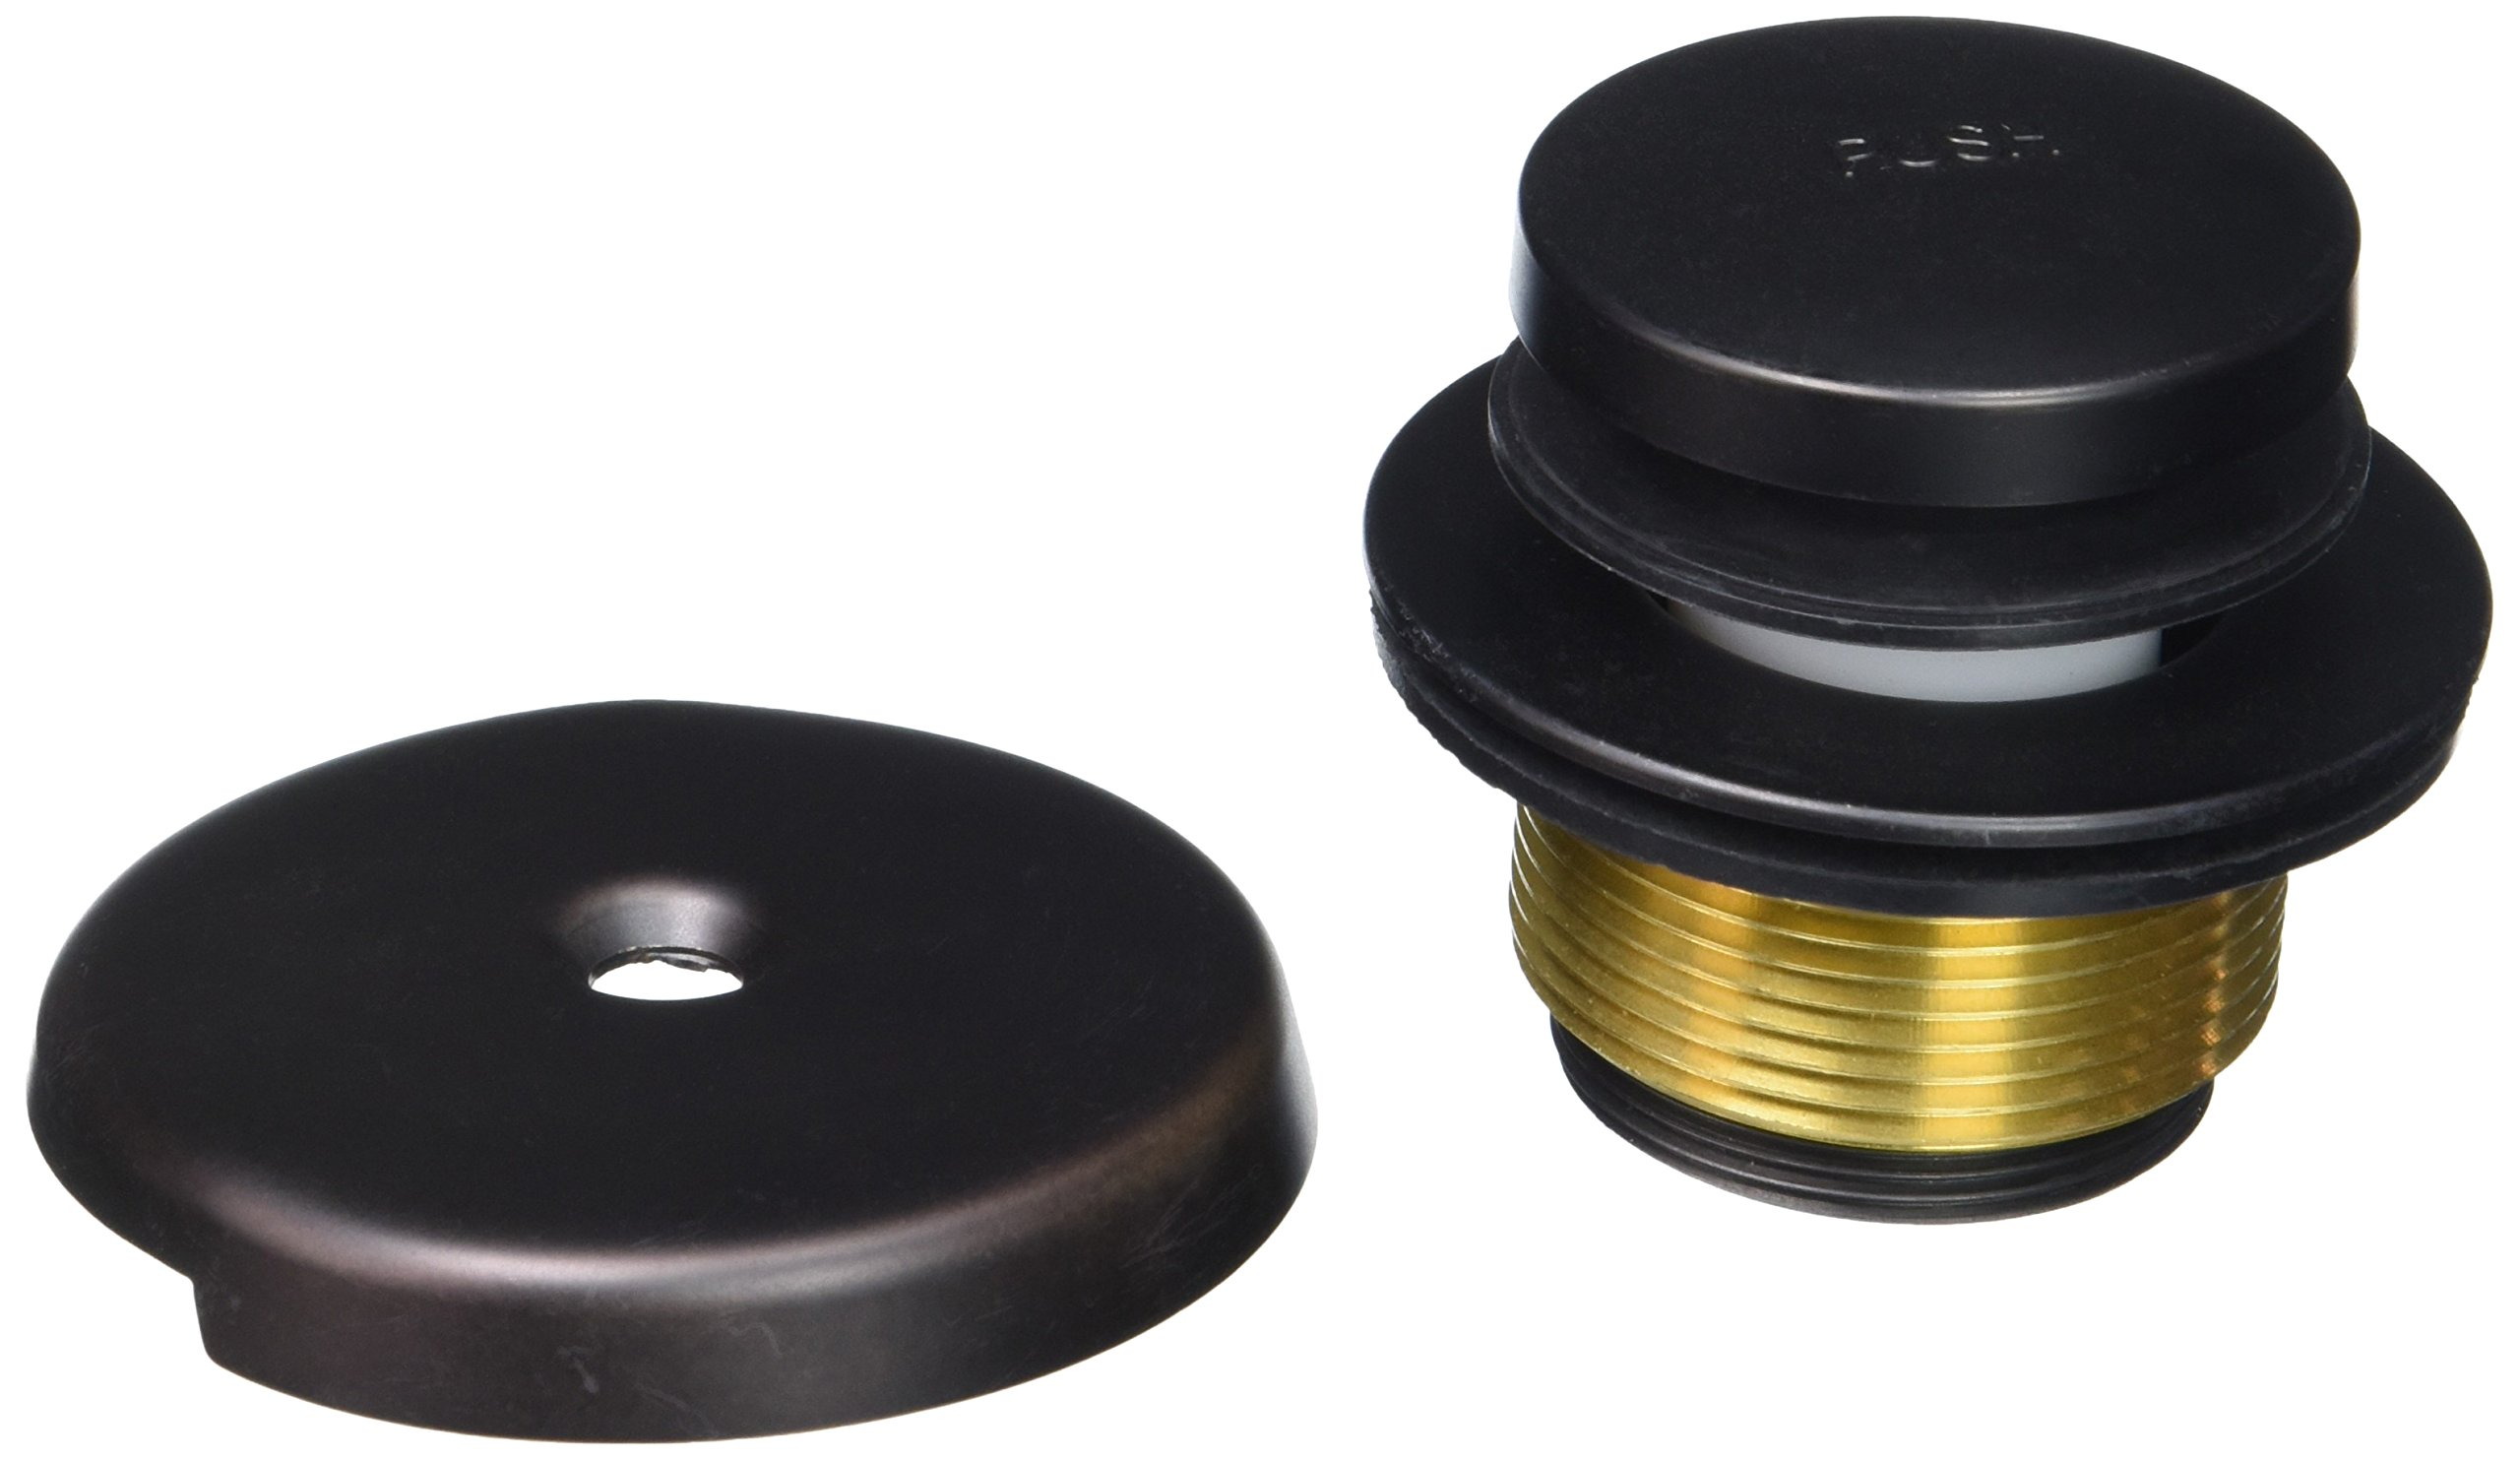 Jones Stephens B5161RB 1 Hole Toe Touch Conversion Kit, Oil Rubbed Bronze